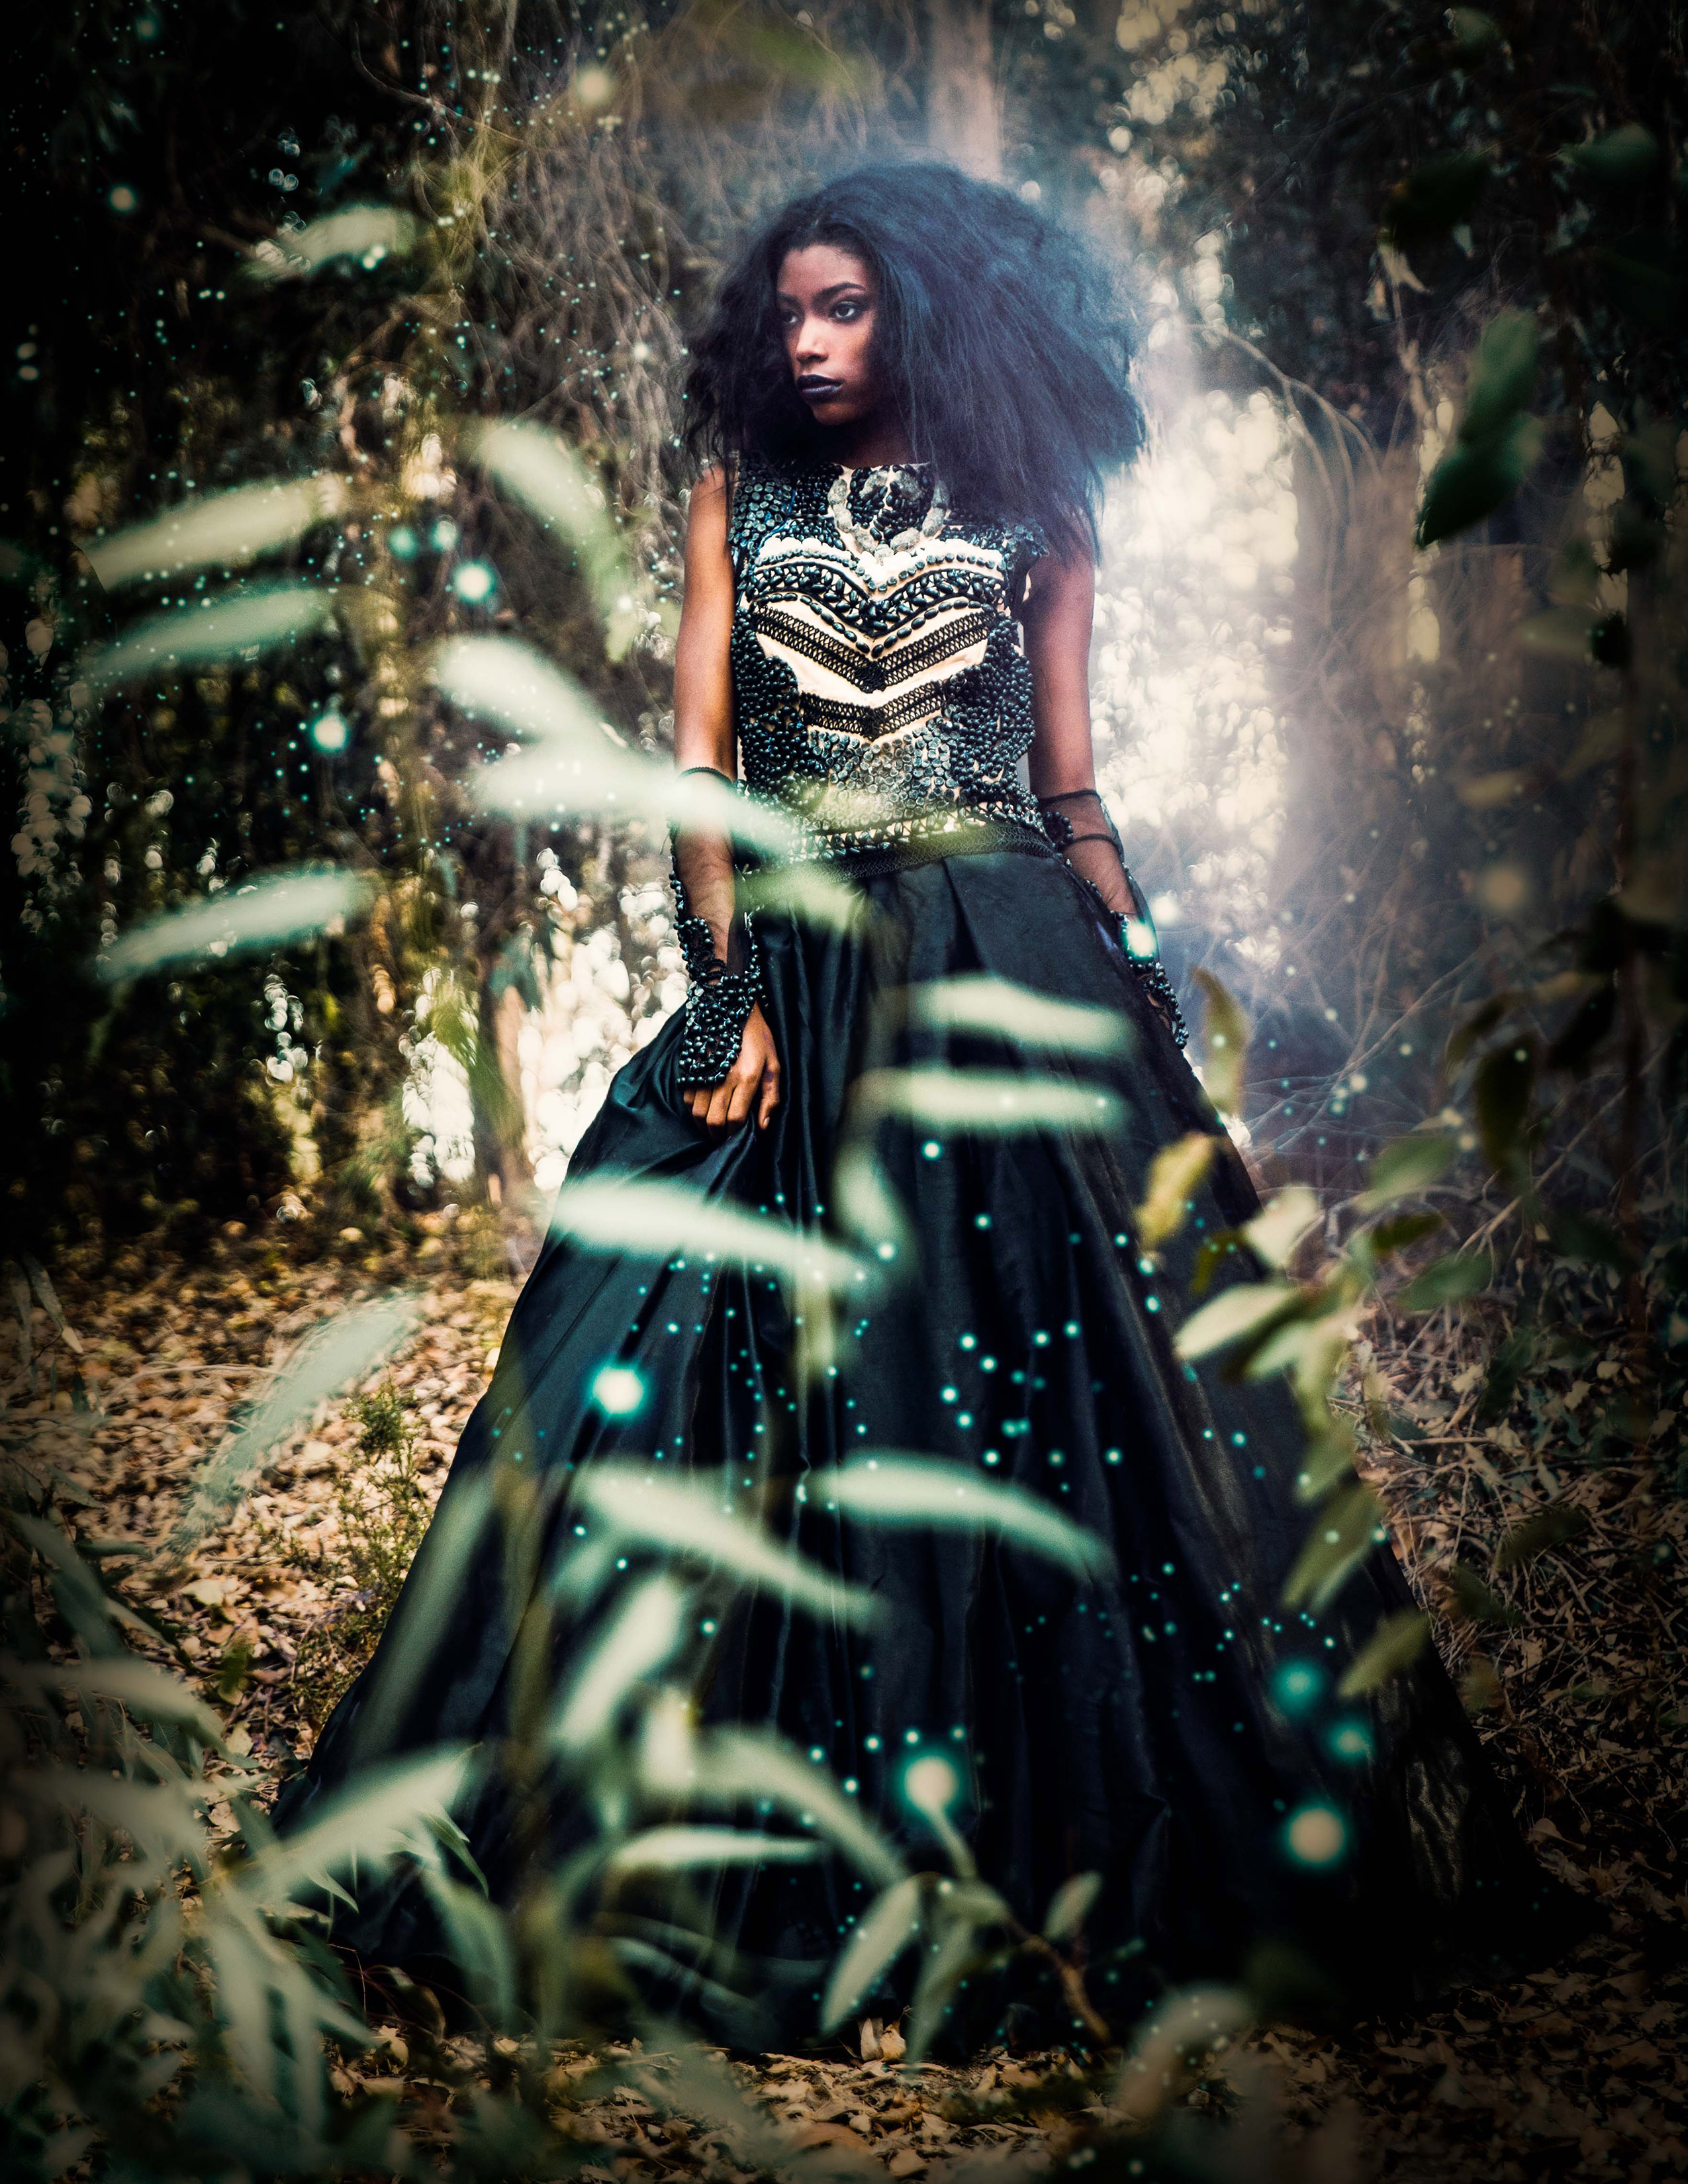 The costume is inspired by the victorian era fashion and the decorations are made from jelly beans.  Photography by Pavlina Popovska    Make up by: Toni Scott                    Vanessa Vasquez  Hair: Toni Scott  Designer: Delise' Ana  Model: Nautica Lisbey